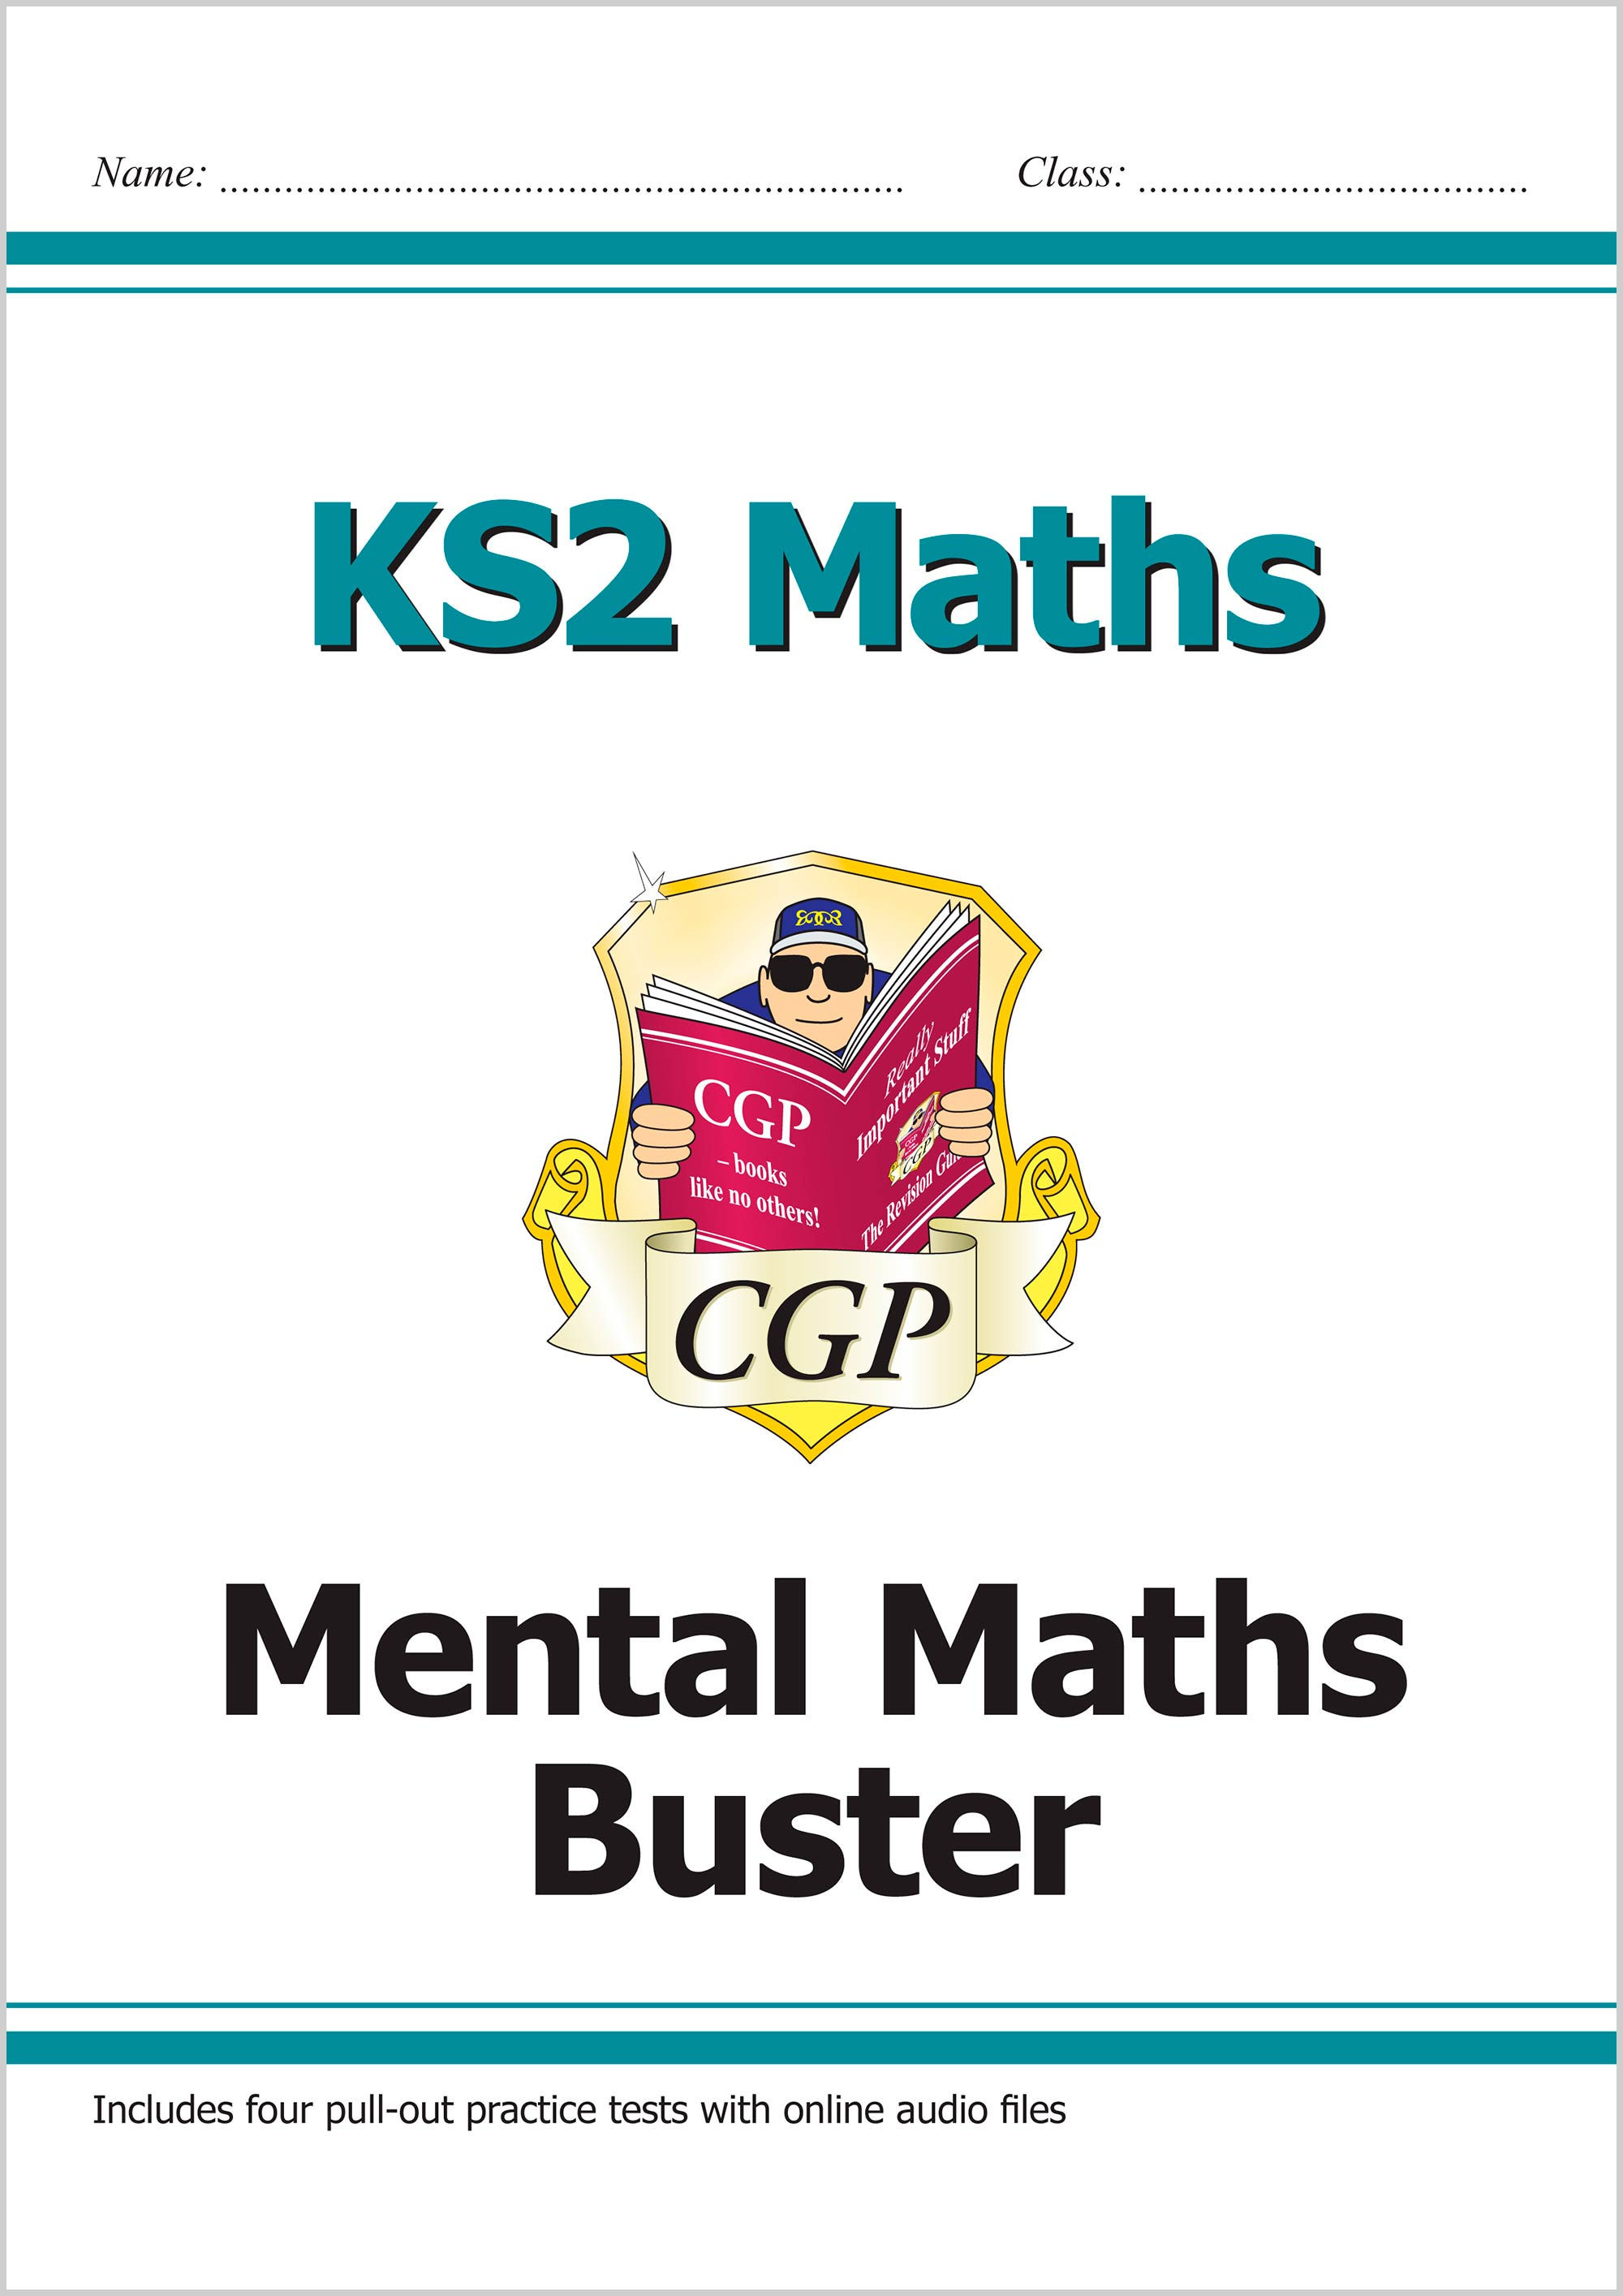 M6MM22 - KS2 Maths - Mental Maths Buster (with audio tests)